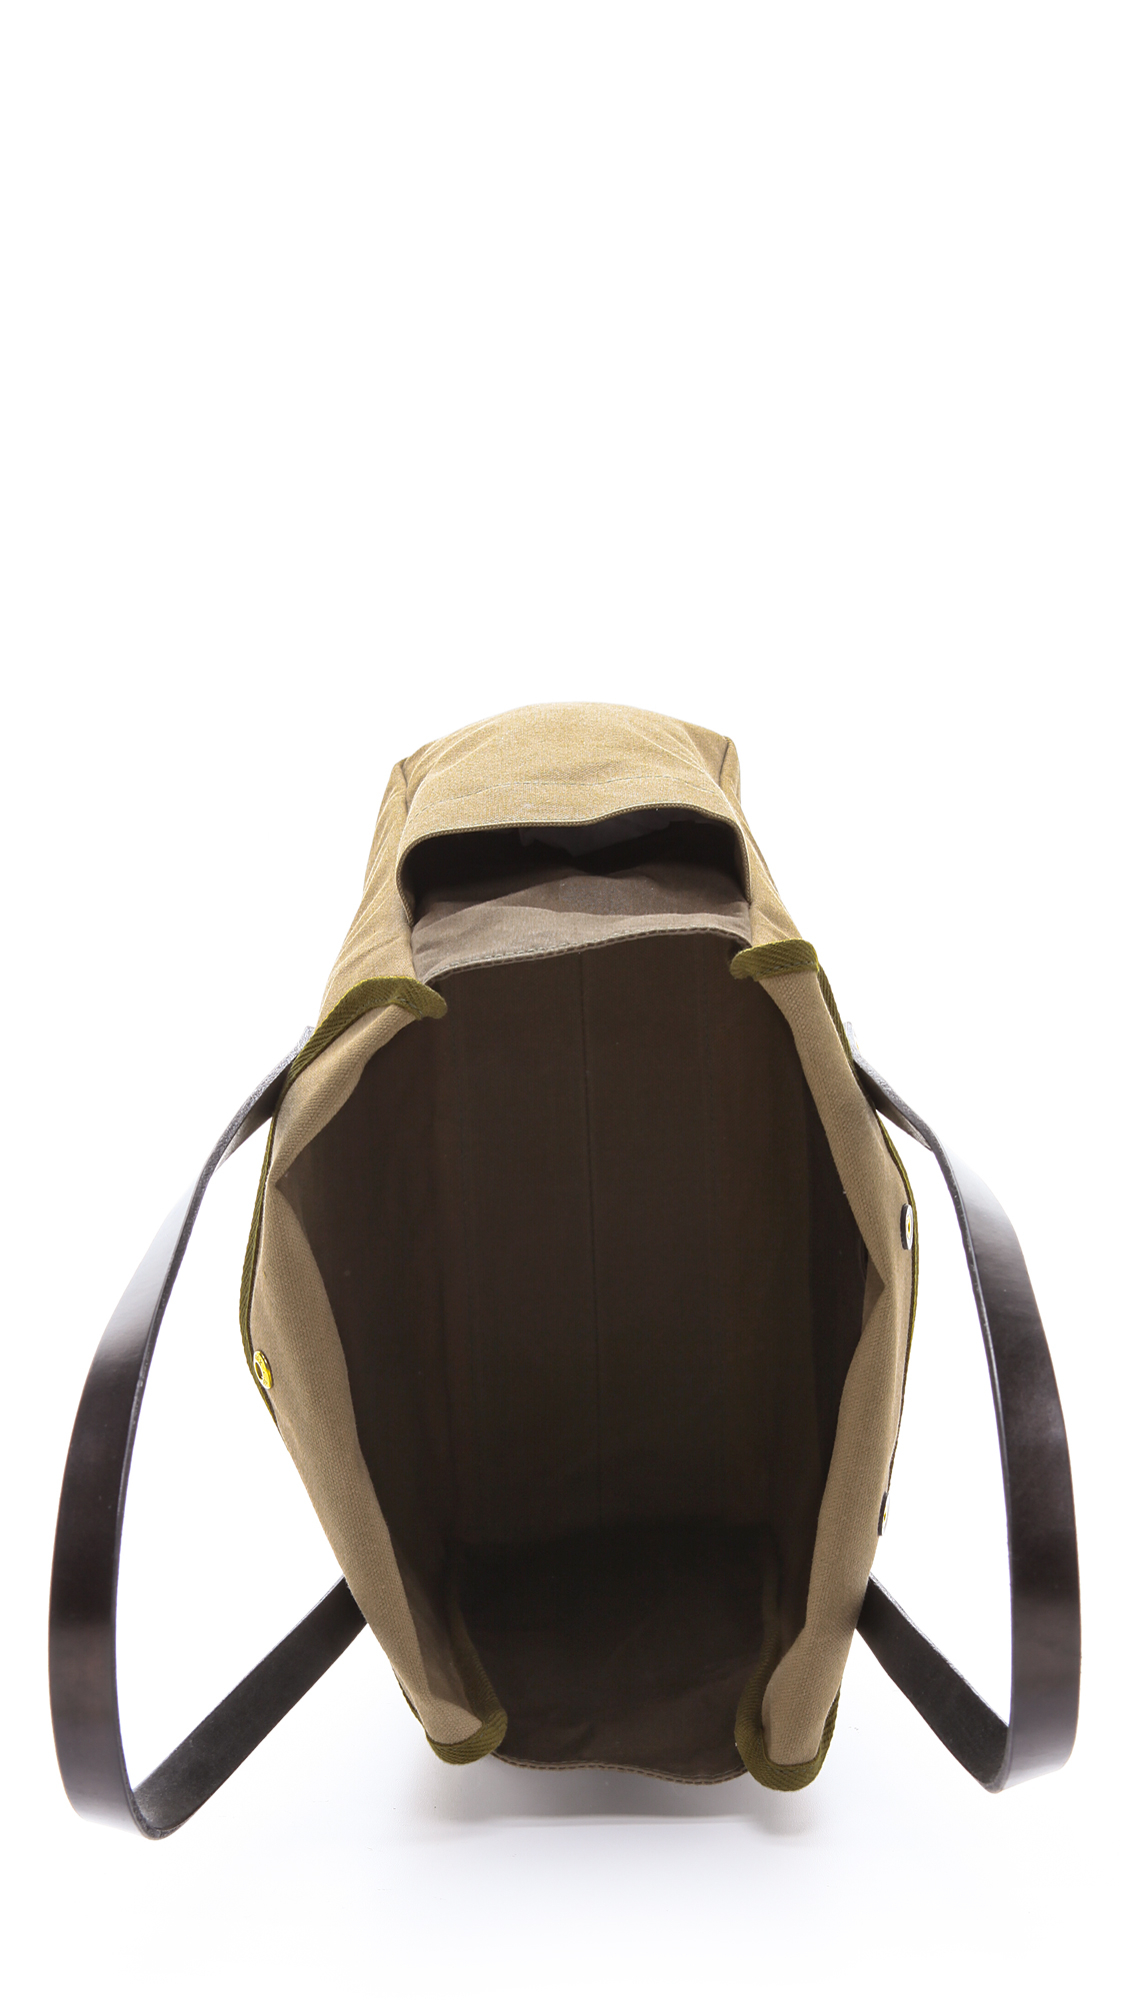 Southern Field Industries Waxed Canvas Px Tote in Oak/Black (Brown) for Men